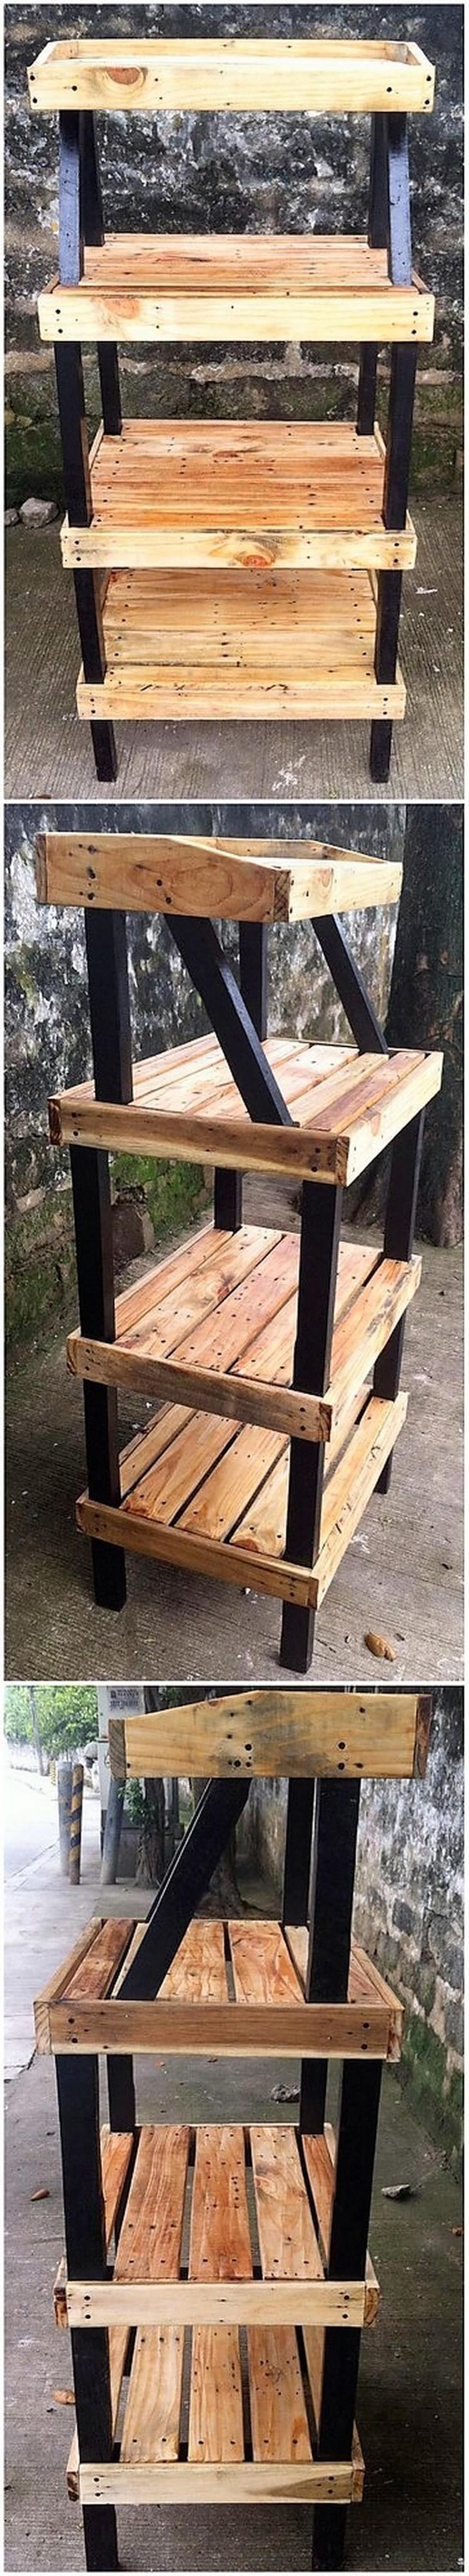 Wooden Pallet Shelving Stand